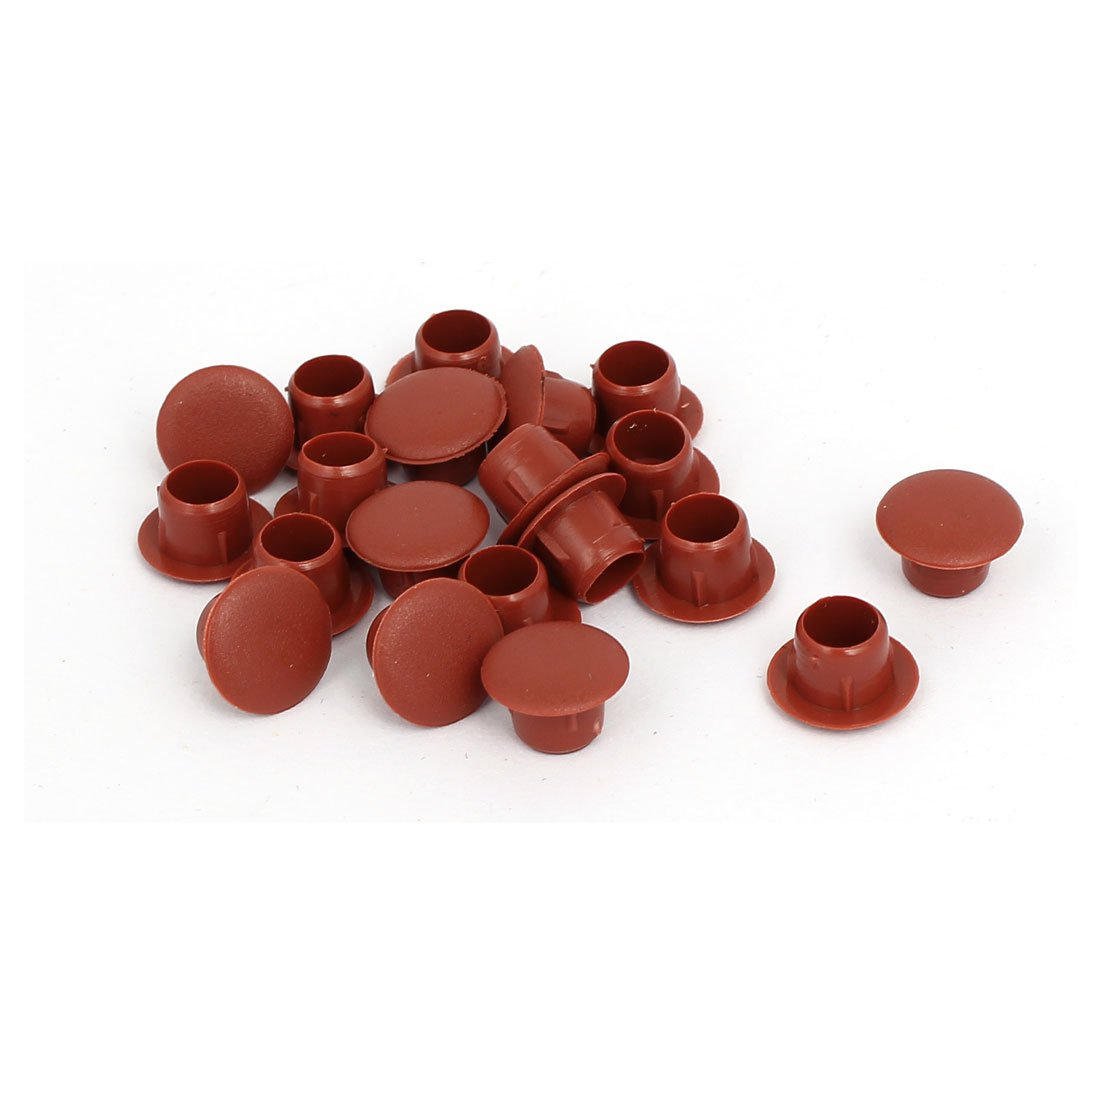 uxcell 8mm Dia Plastic Round Flush Mounted Tube Insert Hole Cover Brown 20pcs